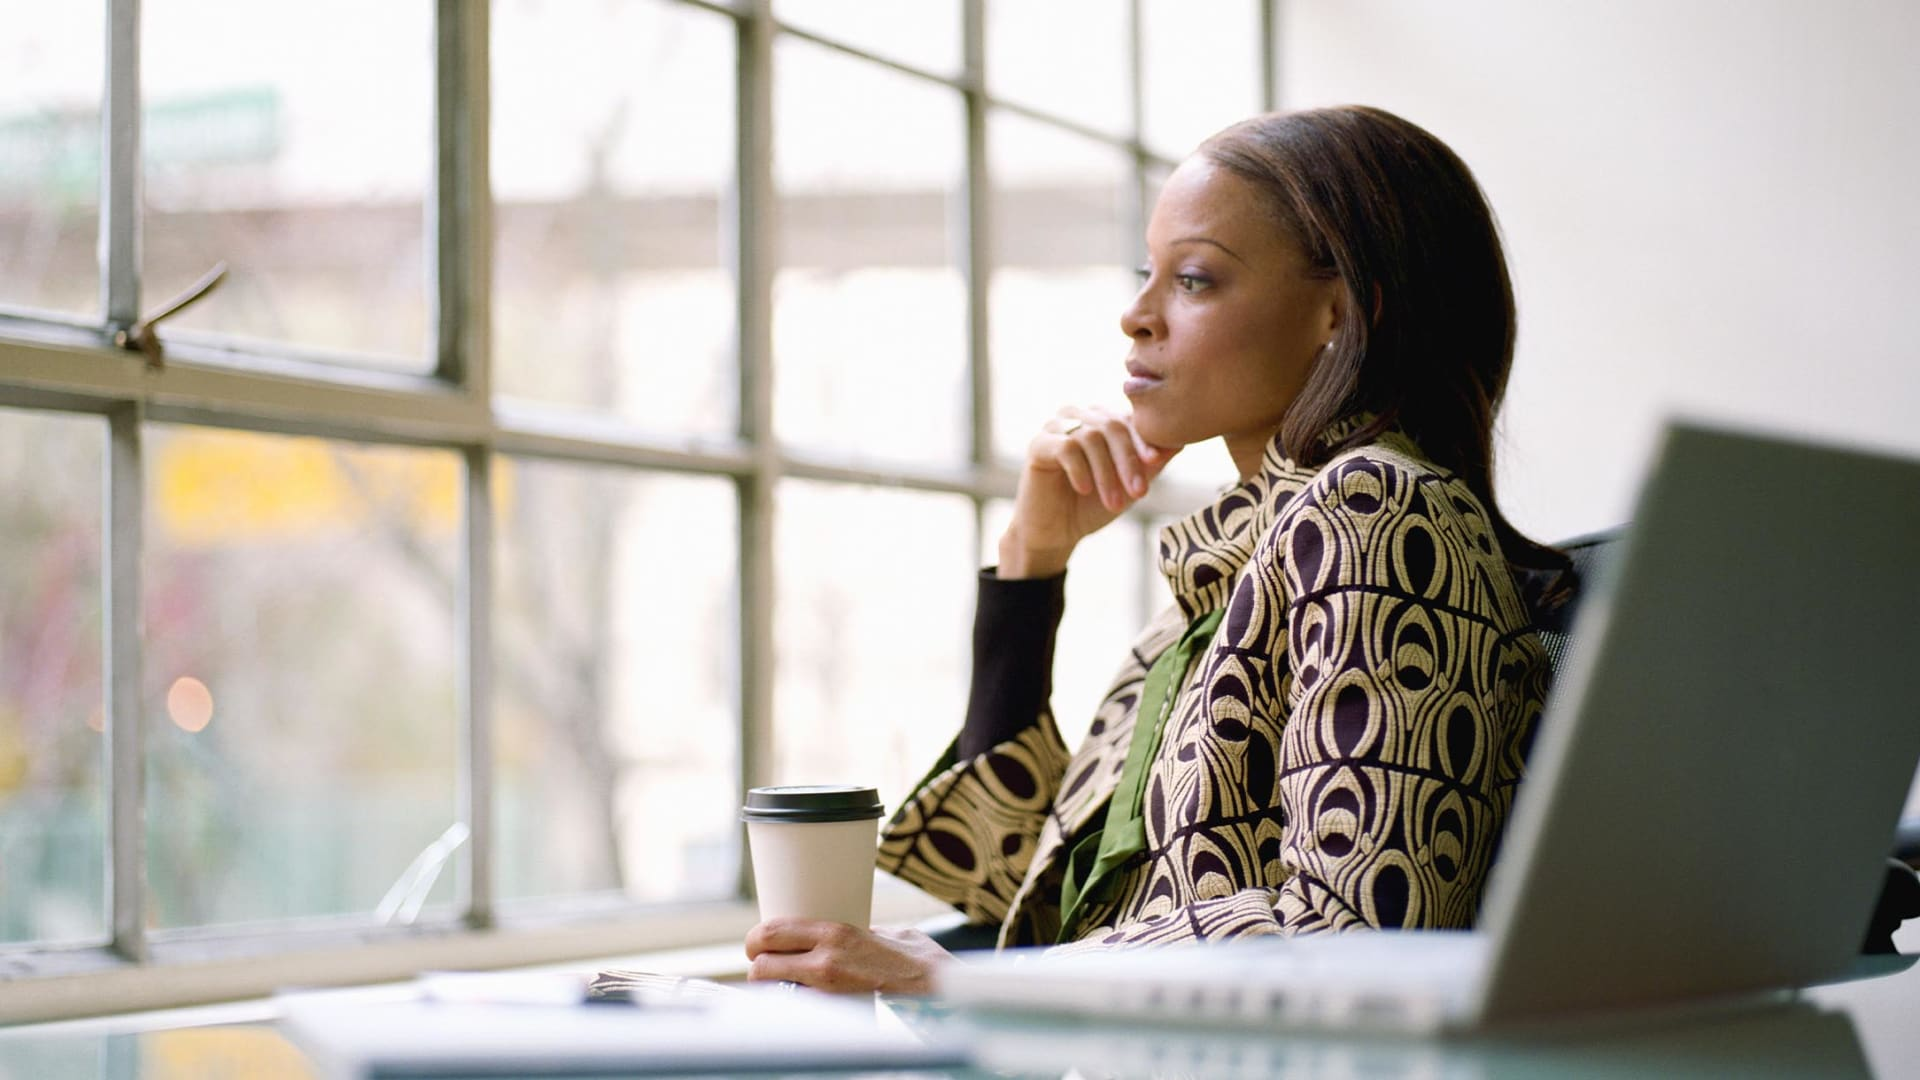 Take Greater Control of Your Career With These 3 Tactics